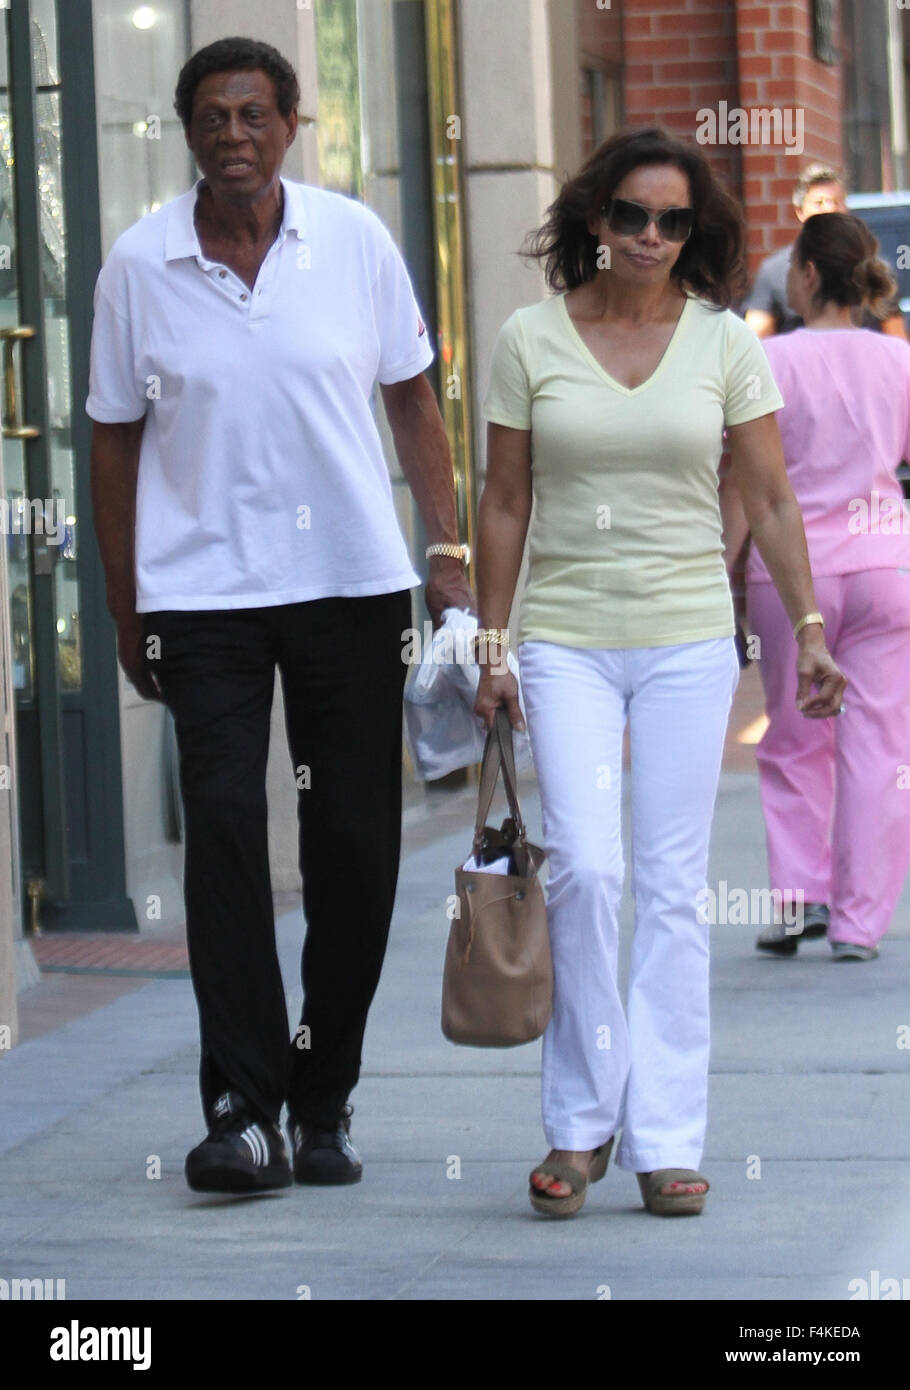 Former Clippers executive Elgin Baylor out and about in Beverly